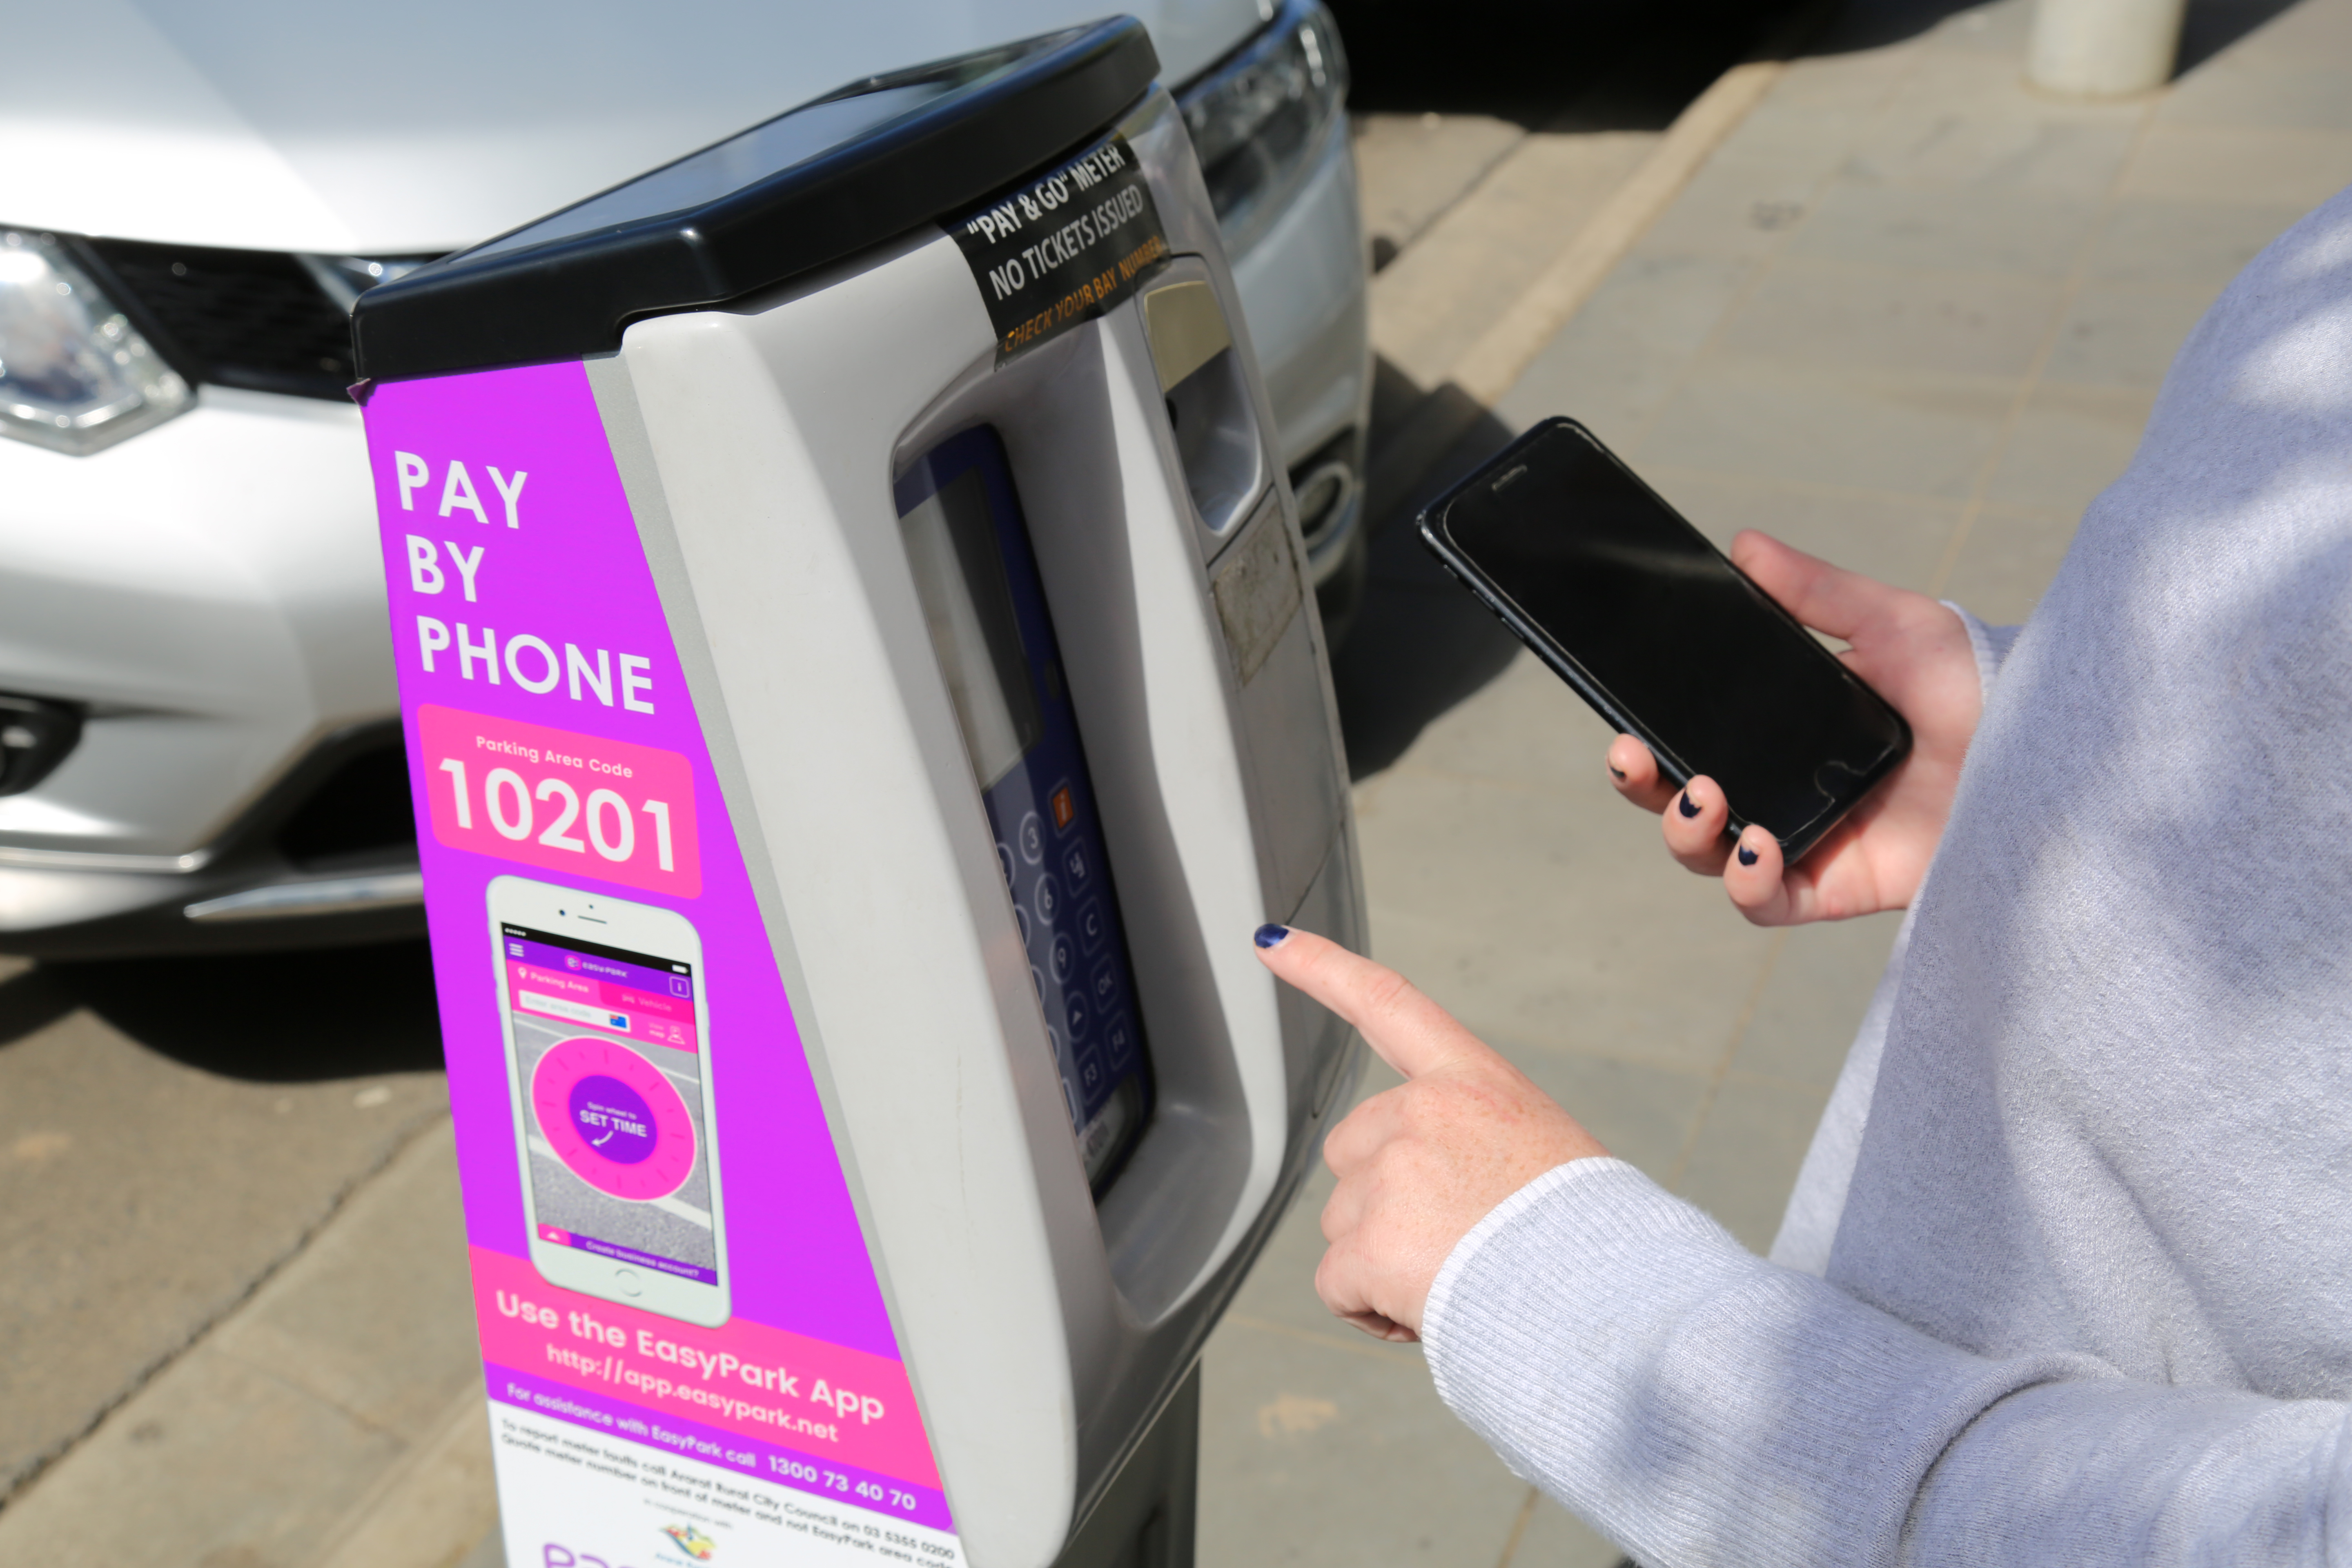 Parking meters back up and running in Barkly Street